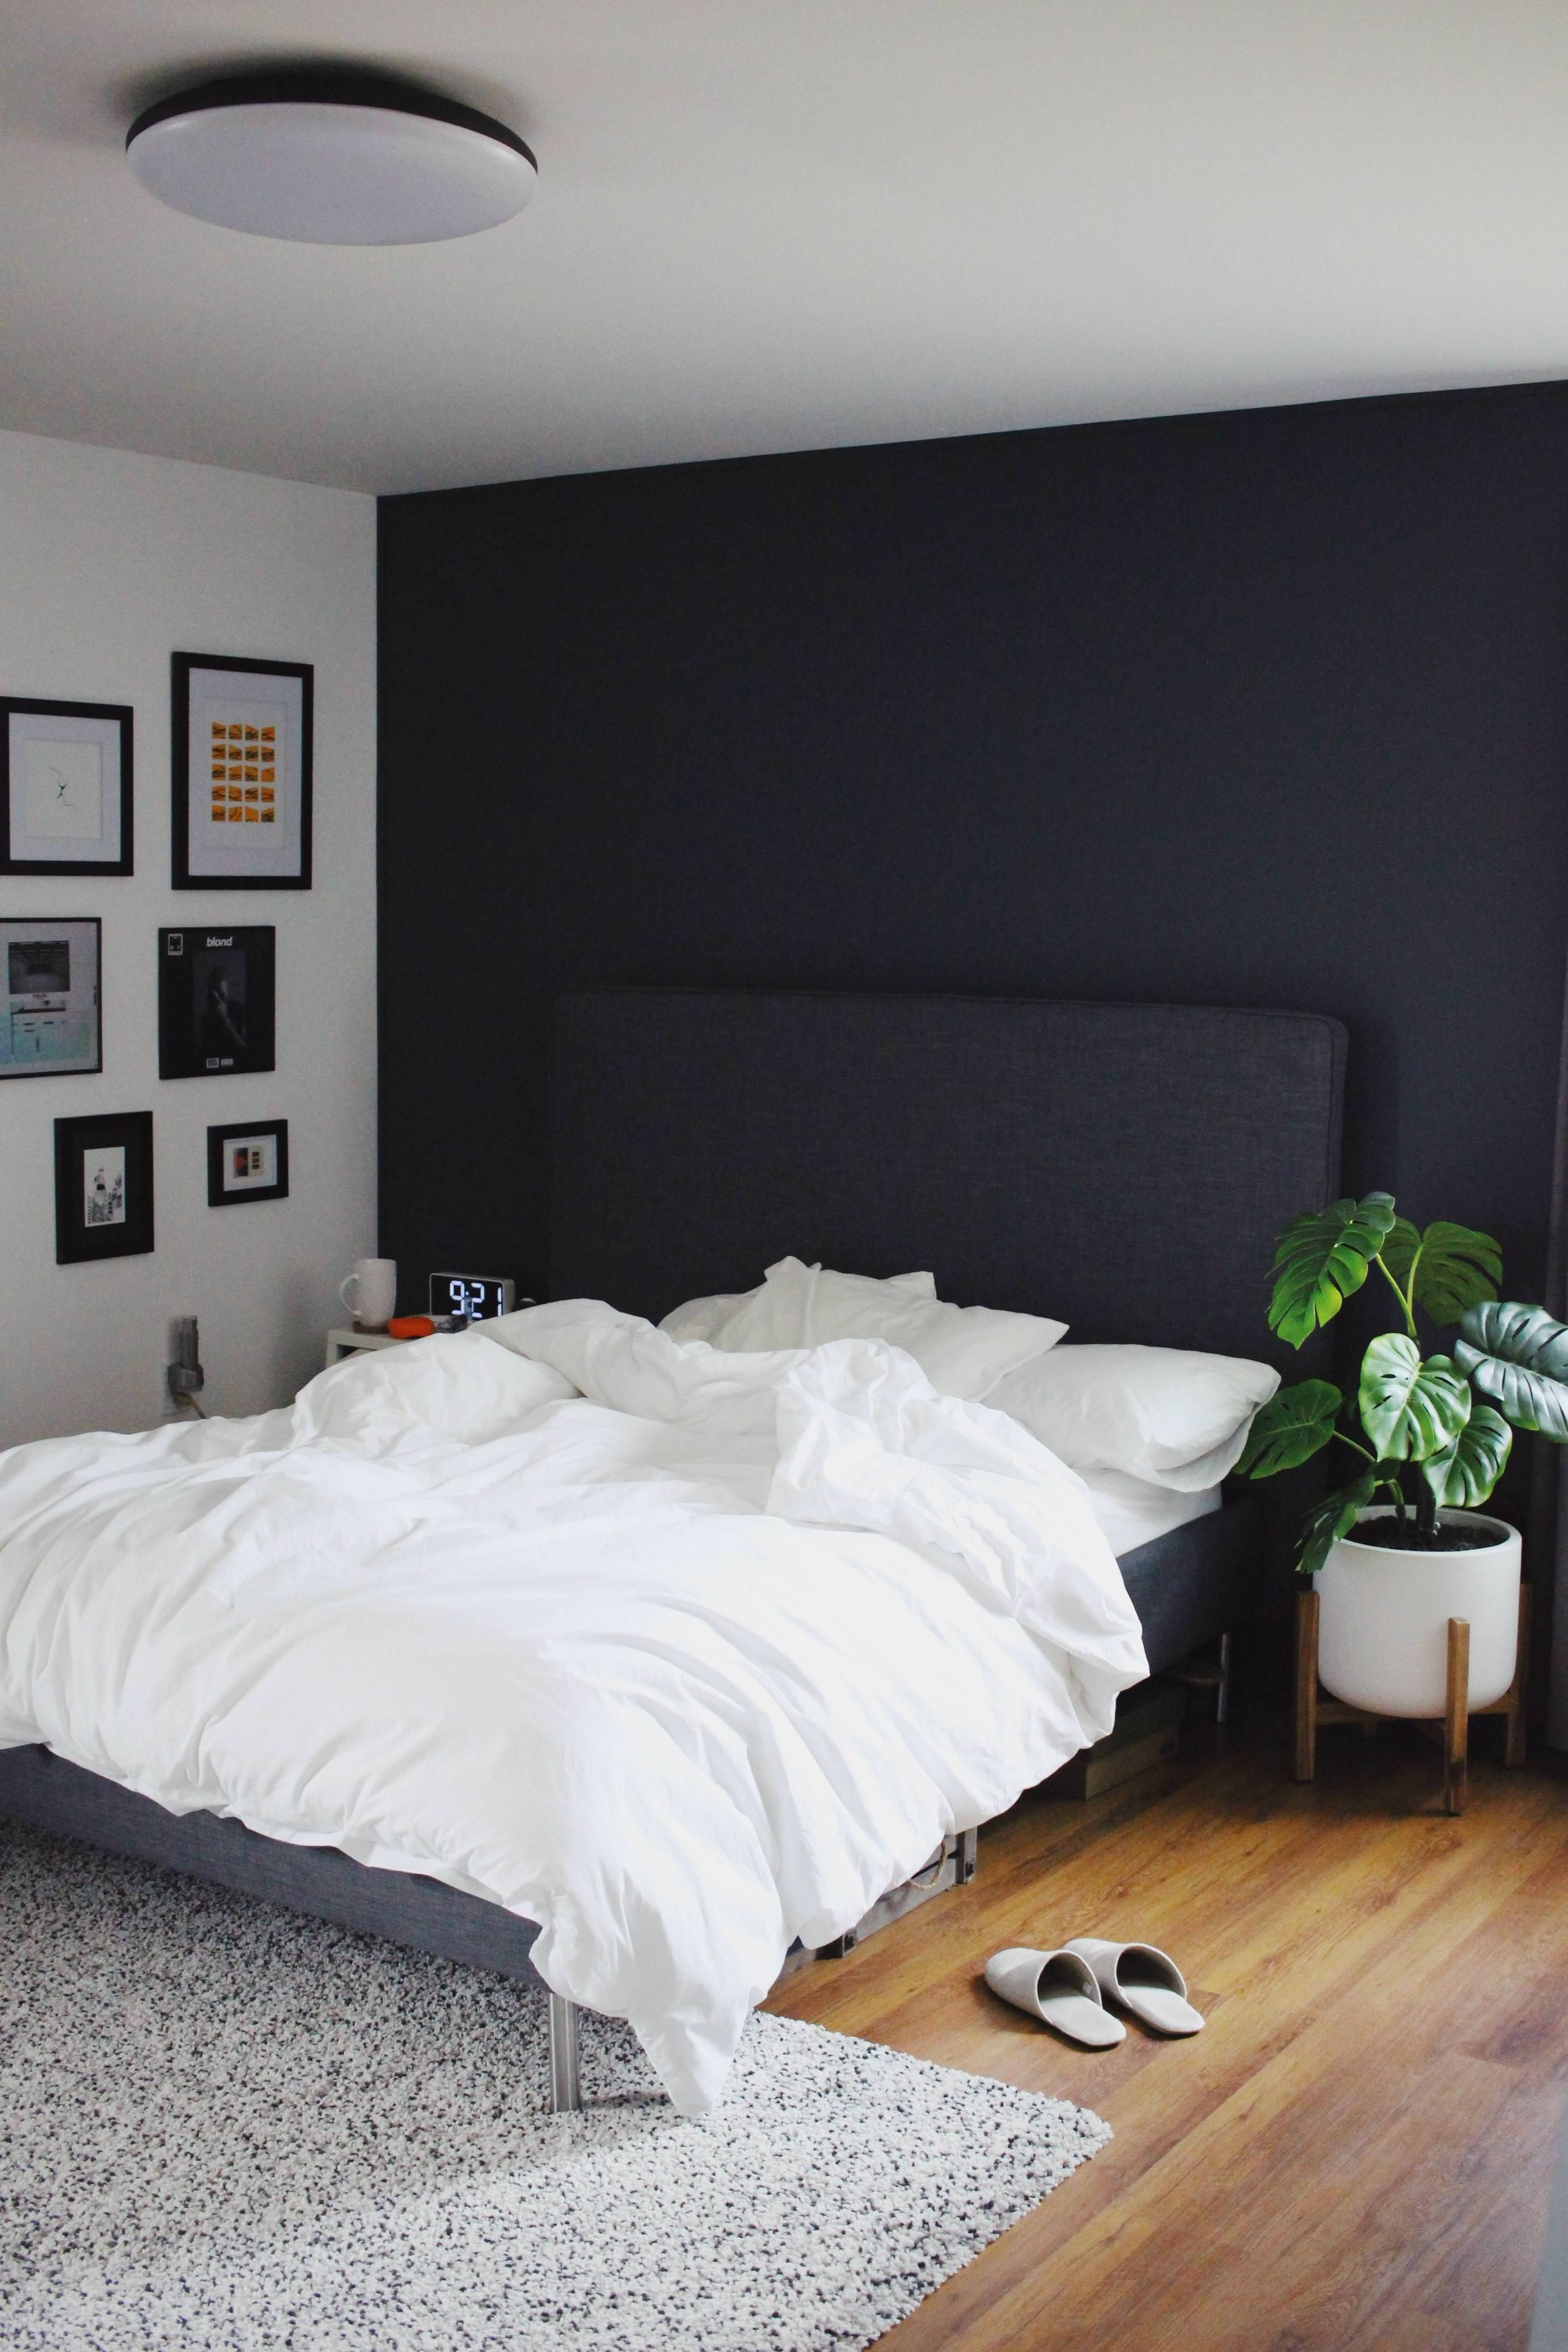 Personal style and aesthetic preferences aside, we can all agree that minimalism is having a major moment—and science gives it even more. Imgur The Magic Of The Internet Apartment Bedroom Decor Room Ideas Bedroom Mens Room Decor